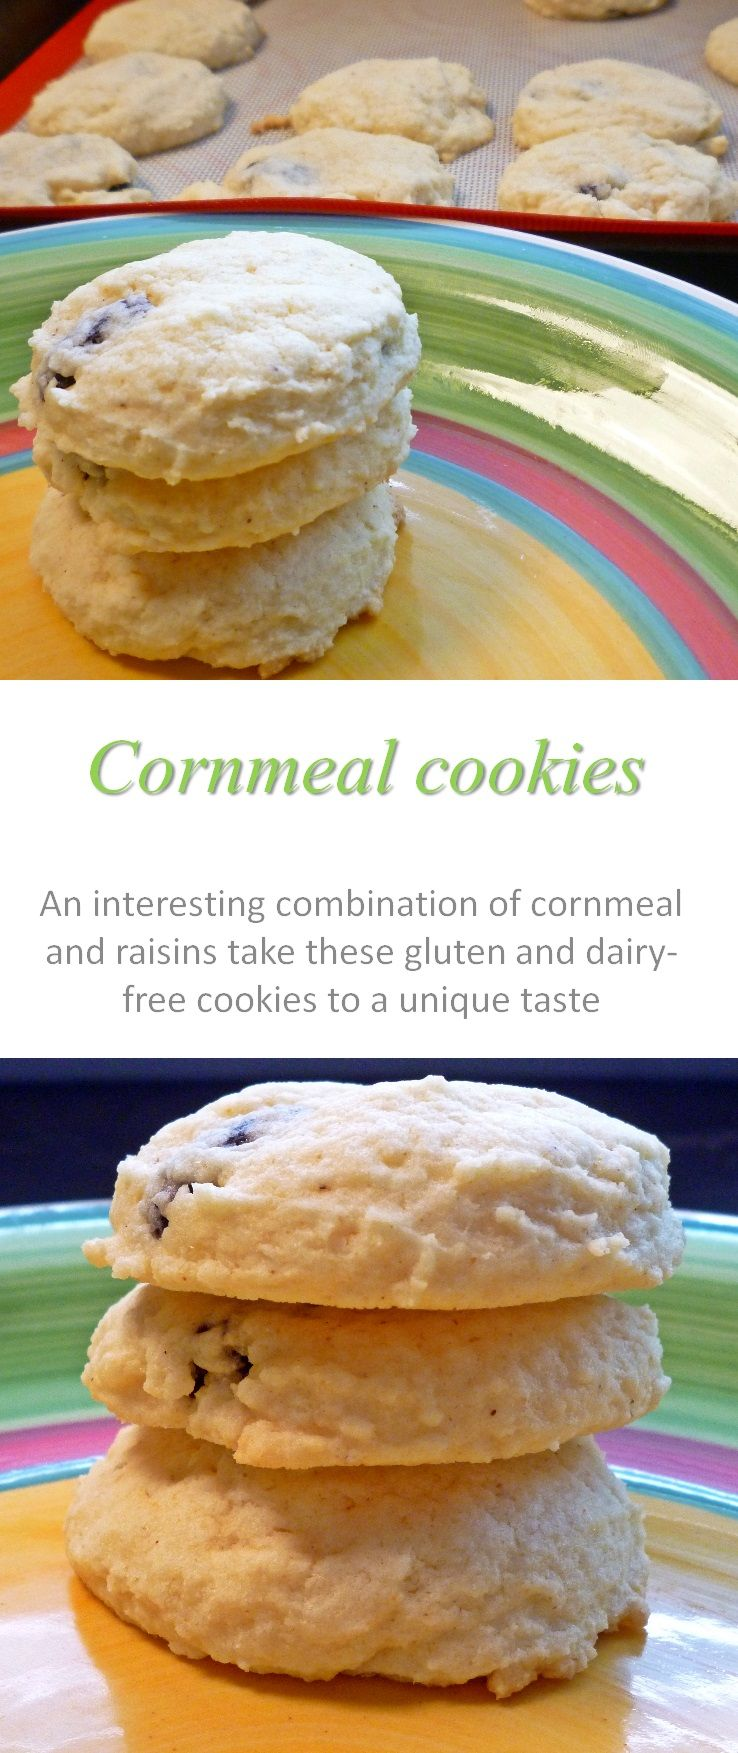 Cook at home cornmeal cookies recipe dairy free